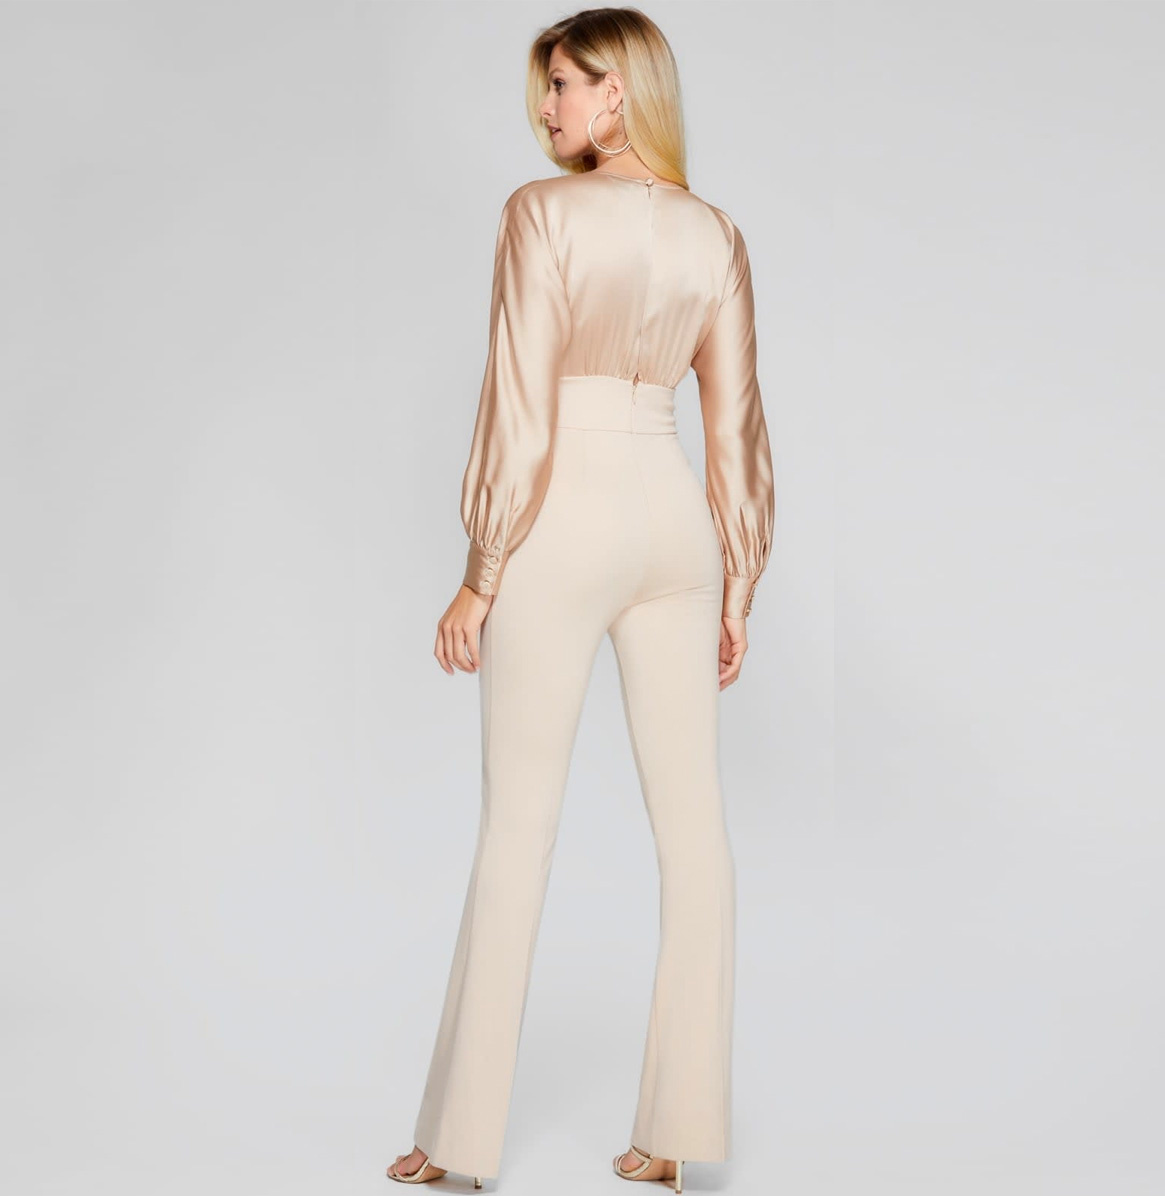 Guess by Marciano Jumpsuit Guess by Marciano